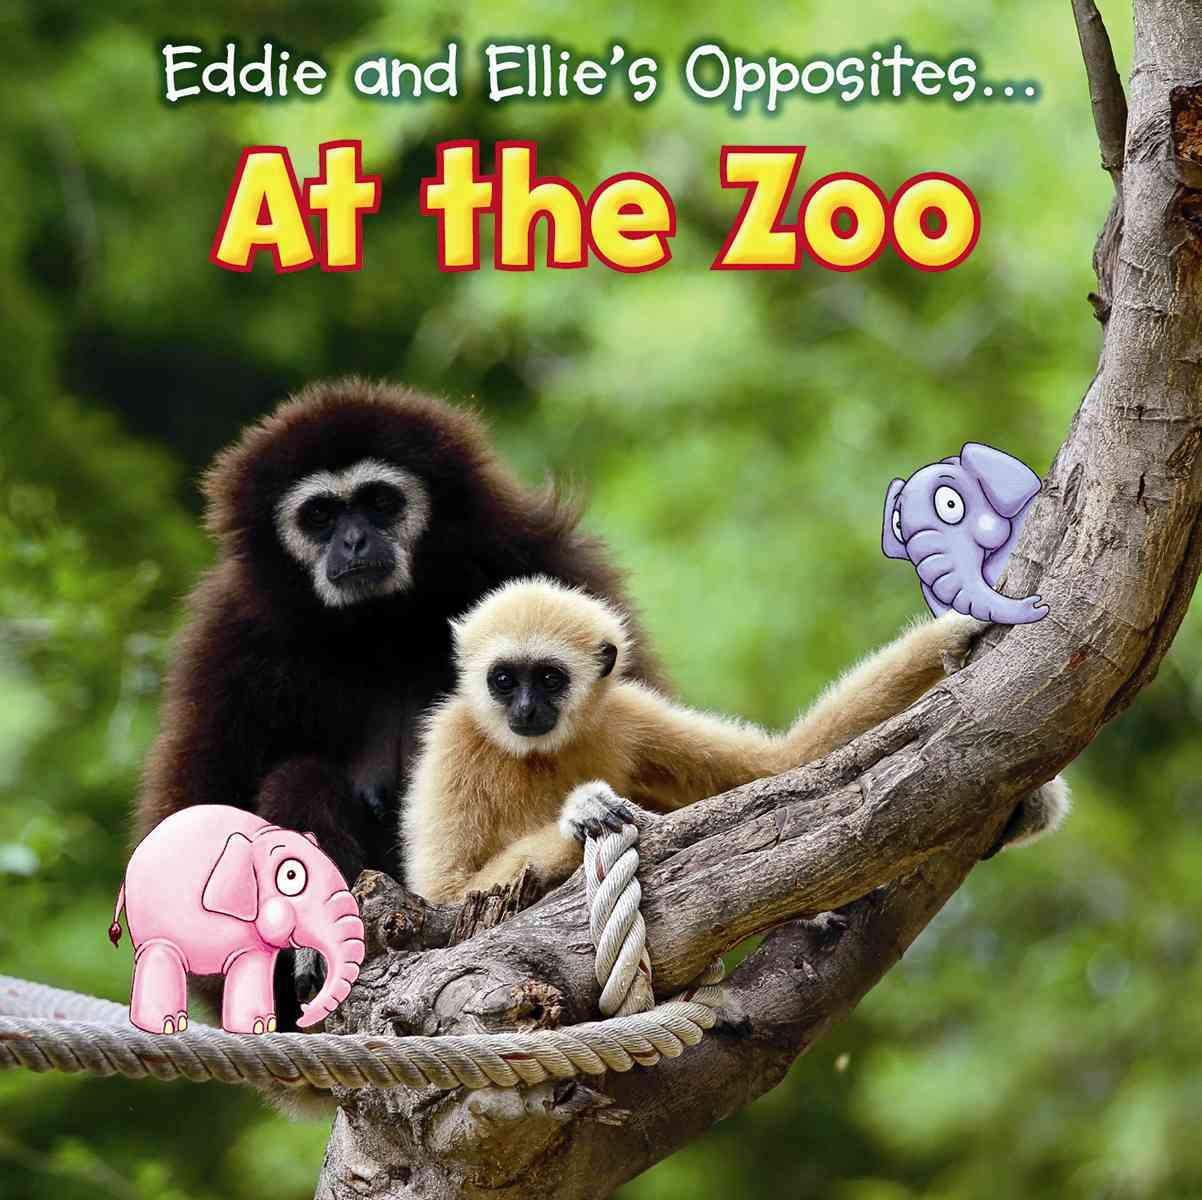 Eddie and Ellie's Opposites at the Zoo By Nunn, Daniel